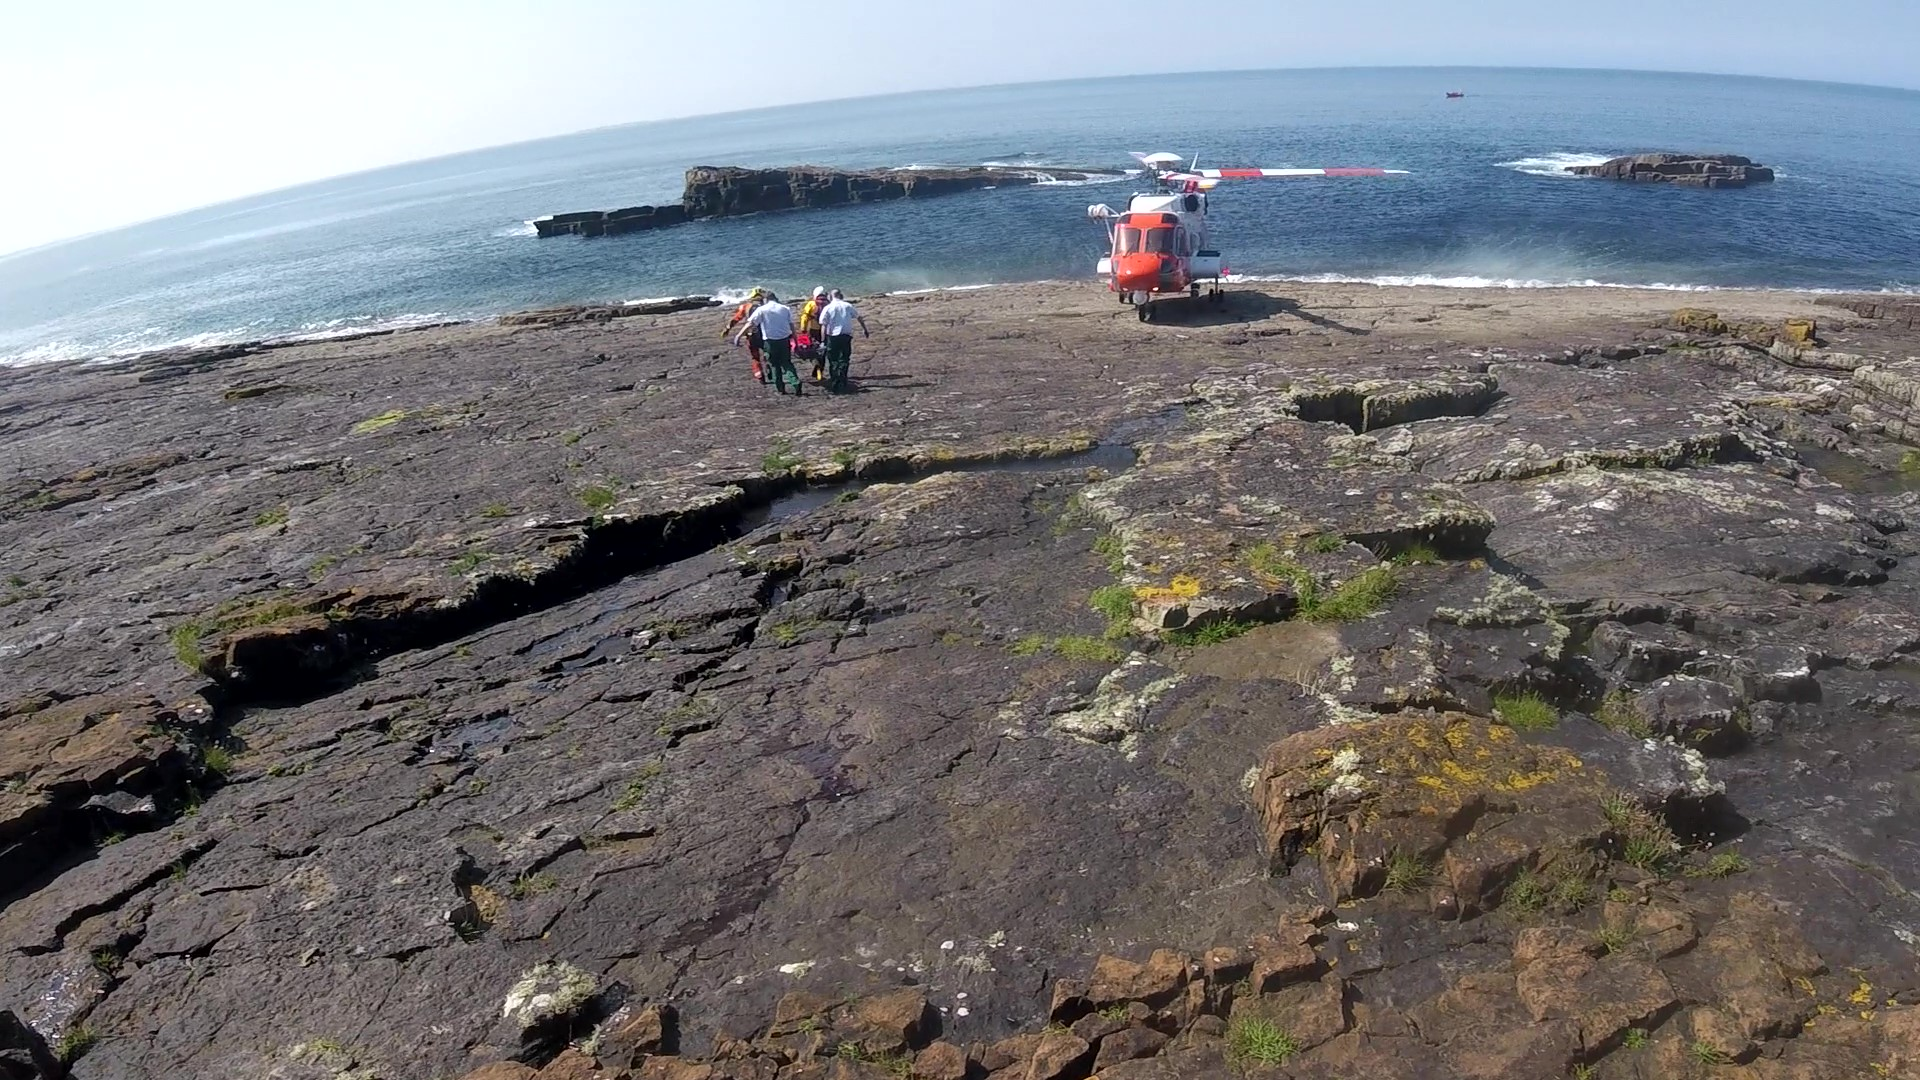 Photo shows casualty being carried by stretcher to the awaiting Rescue 118 helicopter